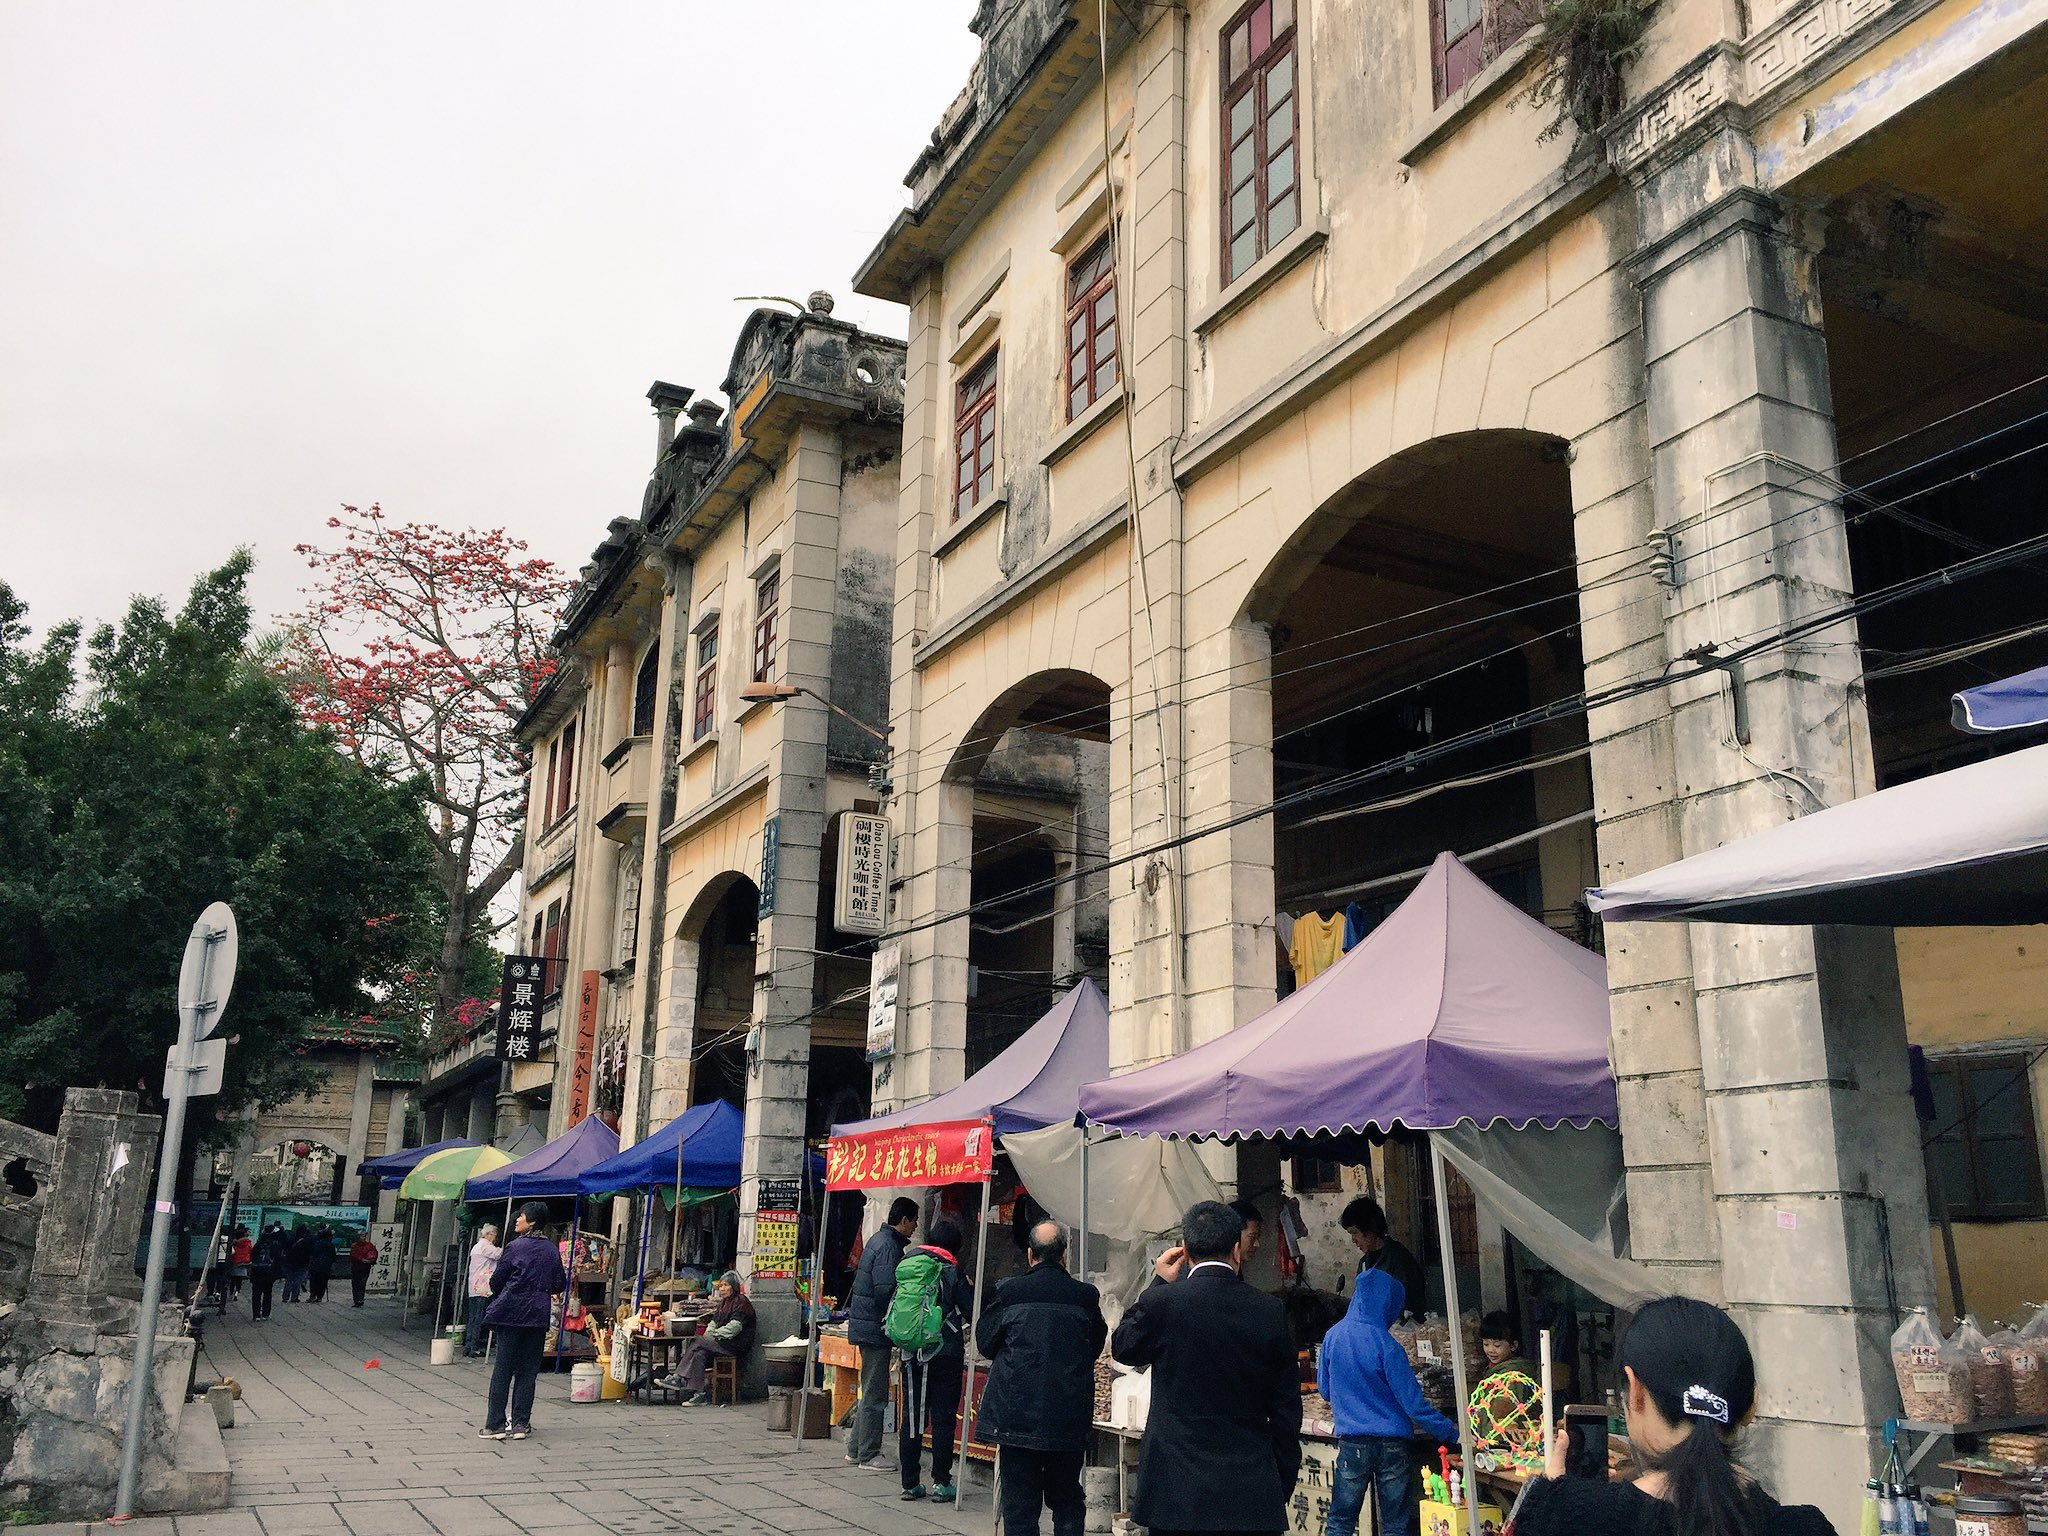 Booming tourist trade at Chikan. Big change since I last visited in 2009. #cahht17 https://t.co/VCxMEWPhRO